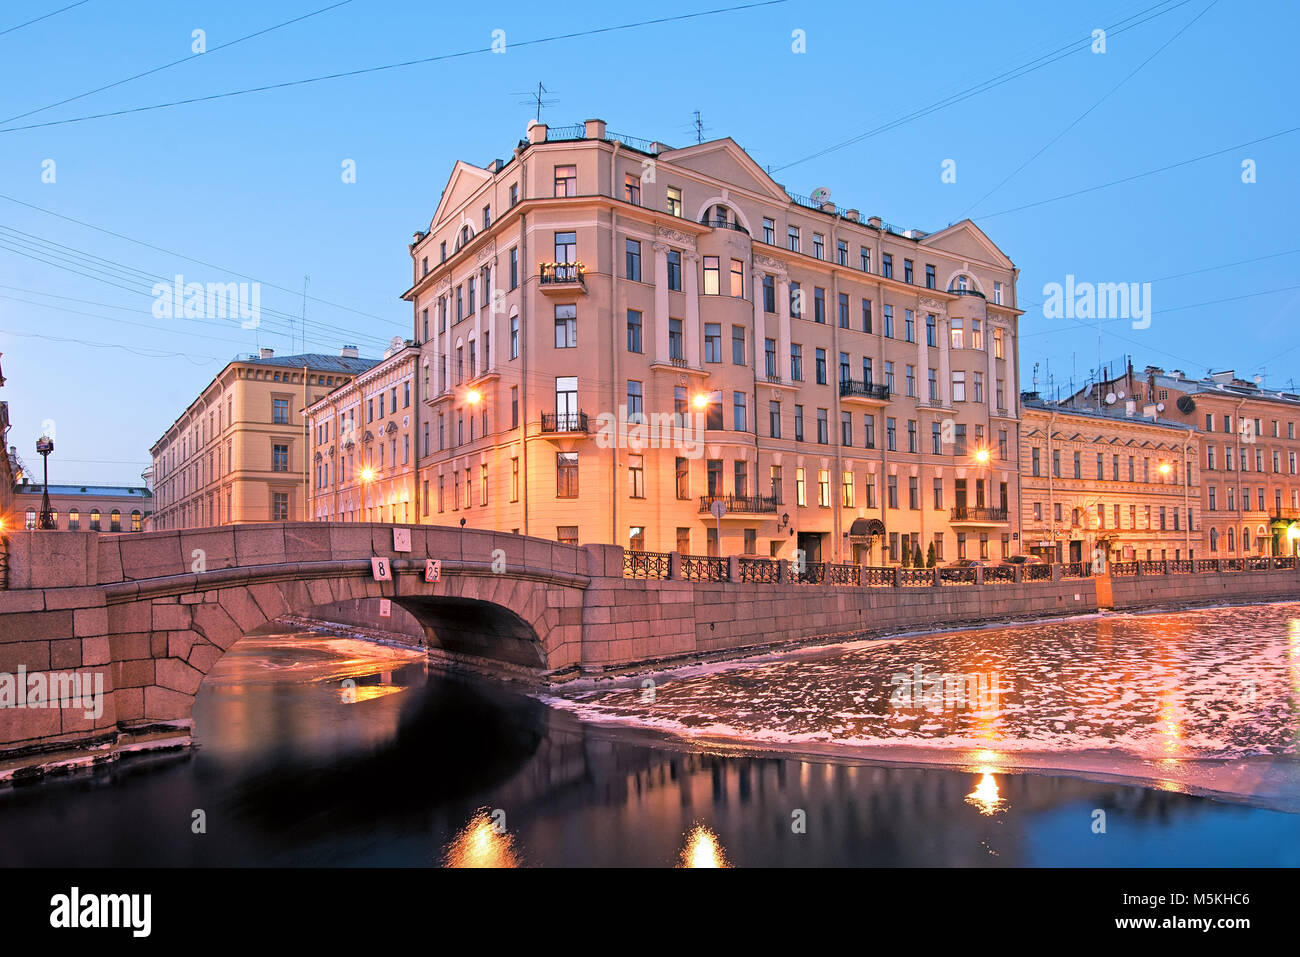 SAINT-PETERSBURG, RUSSIA, JANUARY 1, 2016: Night view of the Moyka River Quay with Second Winter Bridge - Stock Image